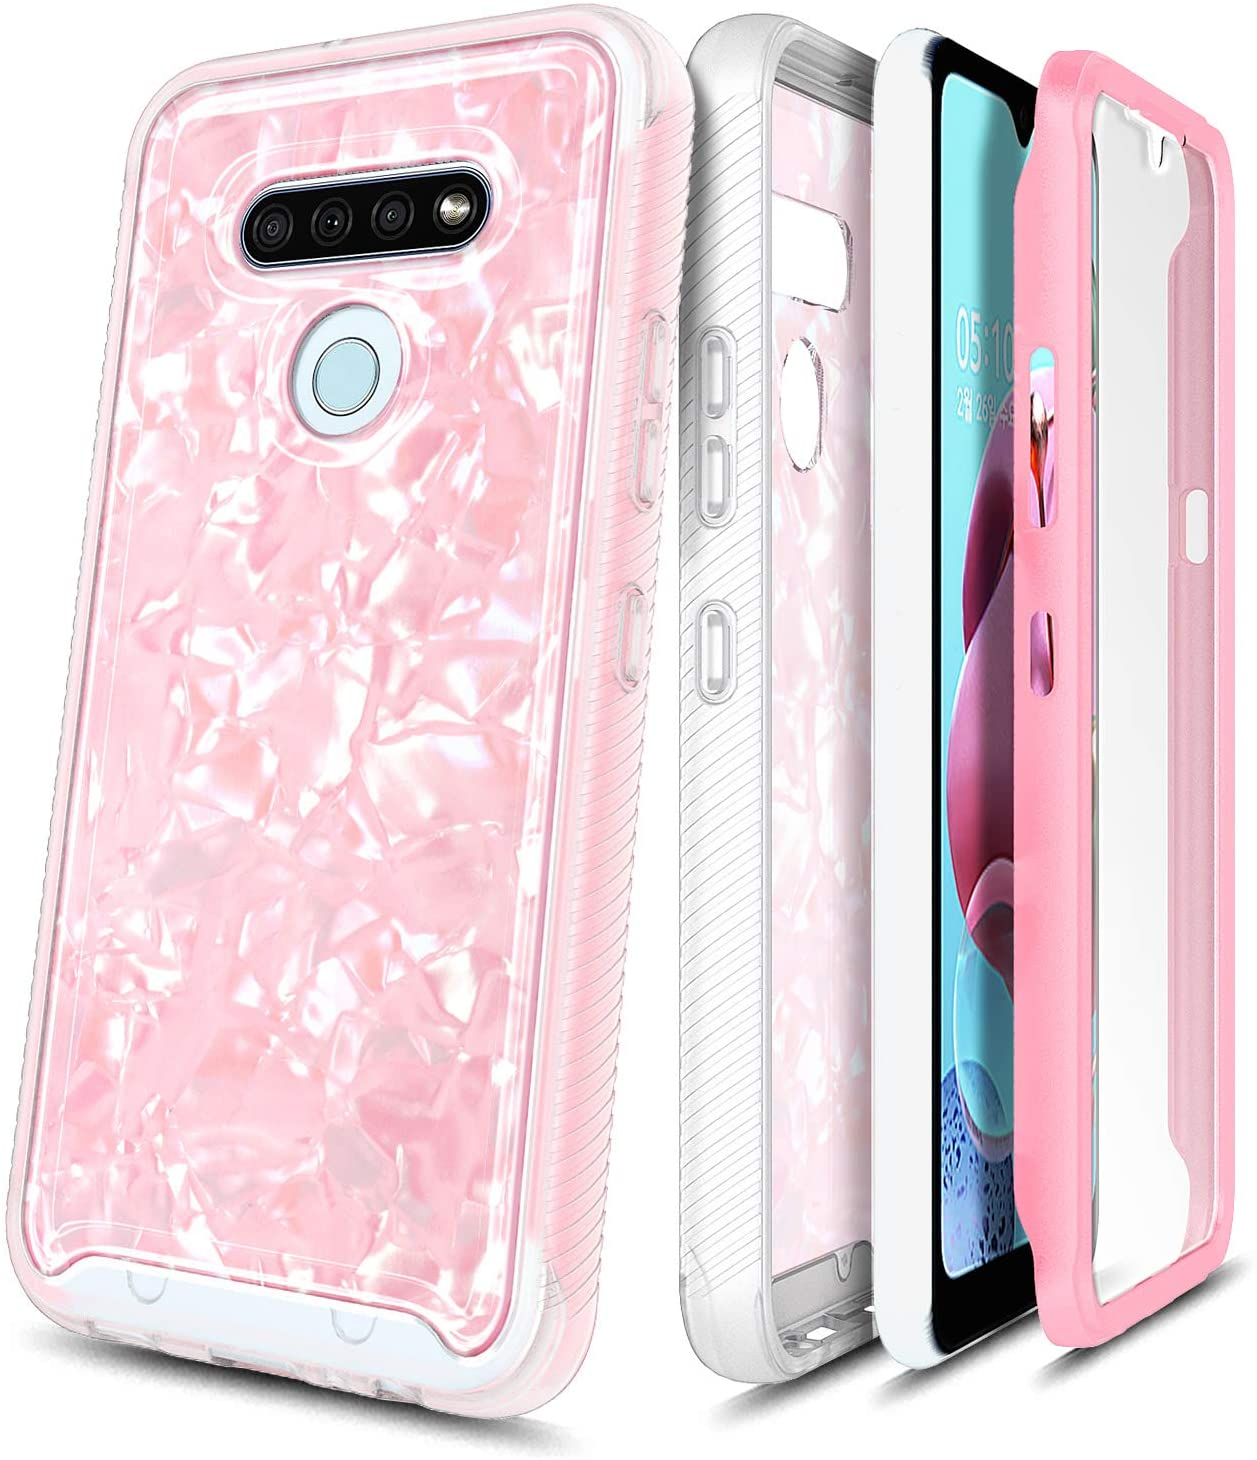 E-Began LG Stylo 6 Case with Built-in Screen Protector, Full-Body Protective Rugged Matte Bumper Cover, Seashell Pattern, Shockproof Impact Resist Durable Phone Case -Light Pink